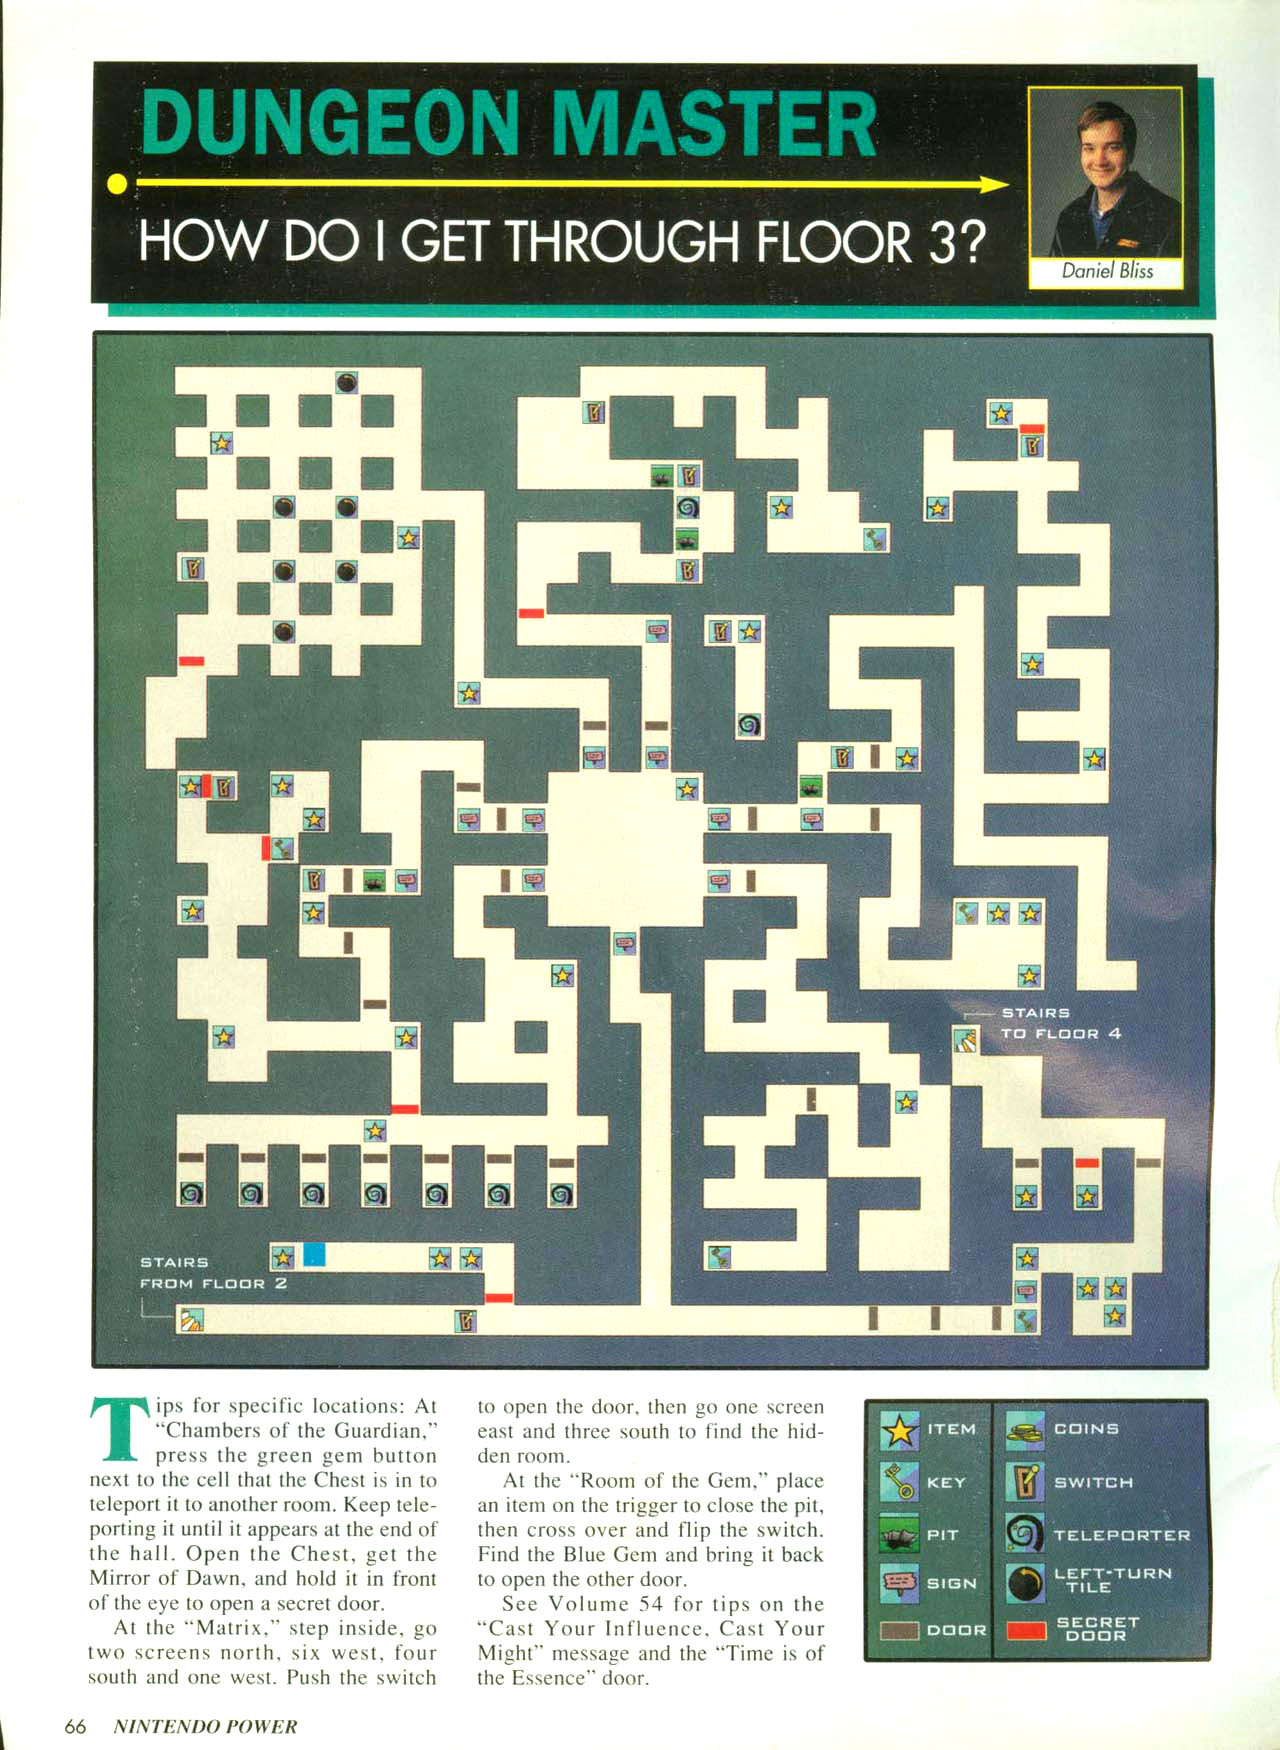 Dungeon Master for Super NES Hints published in American magazine 'Nintendo Power', Issue #58 March 1994, Page 66